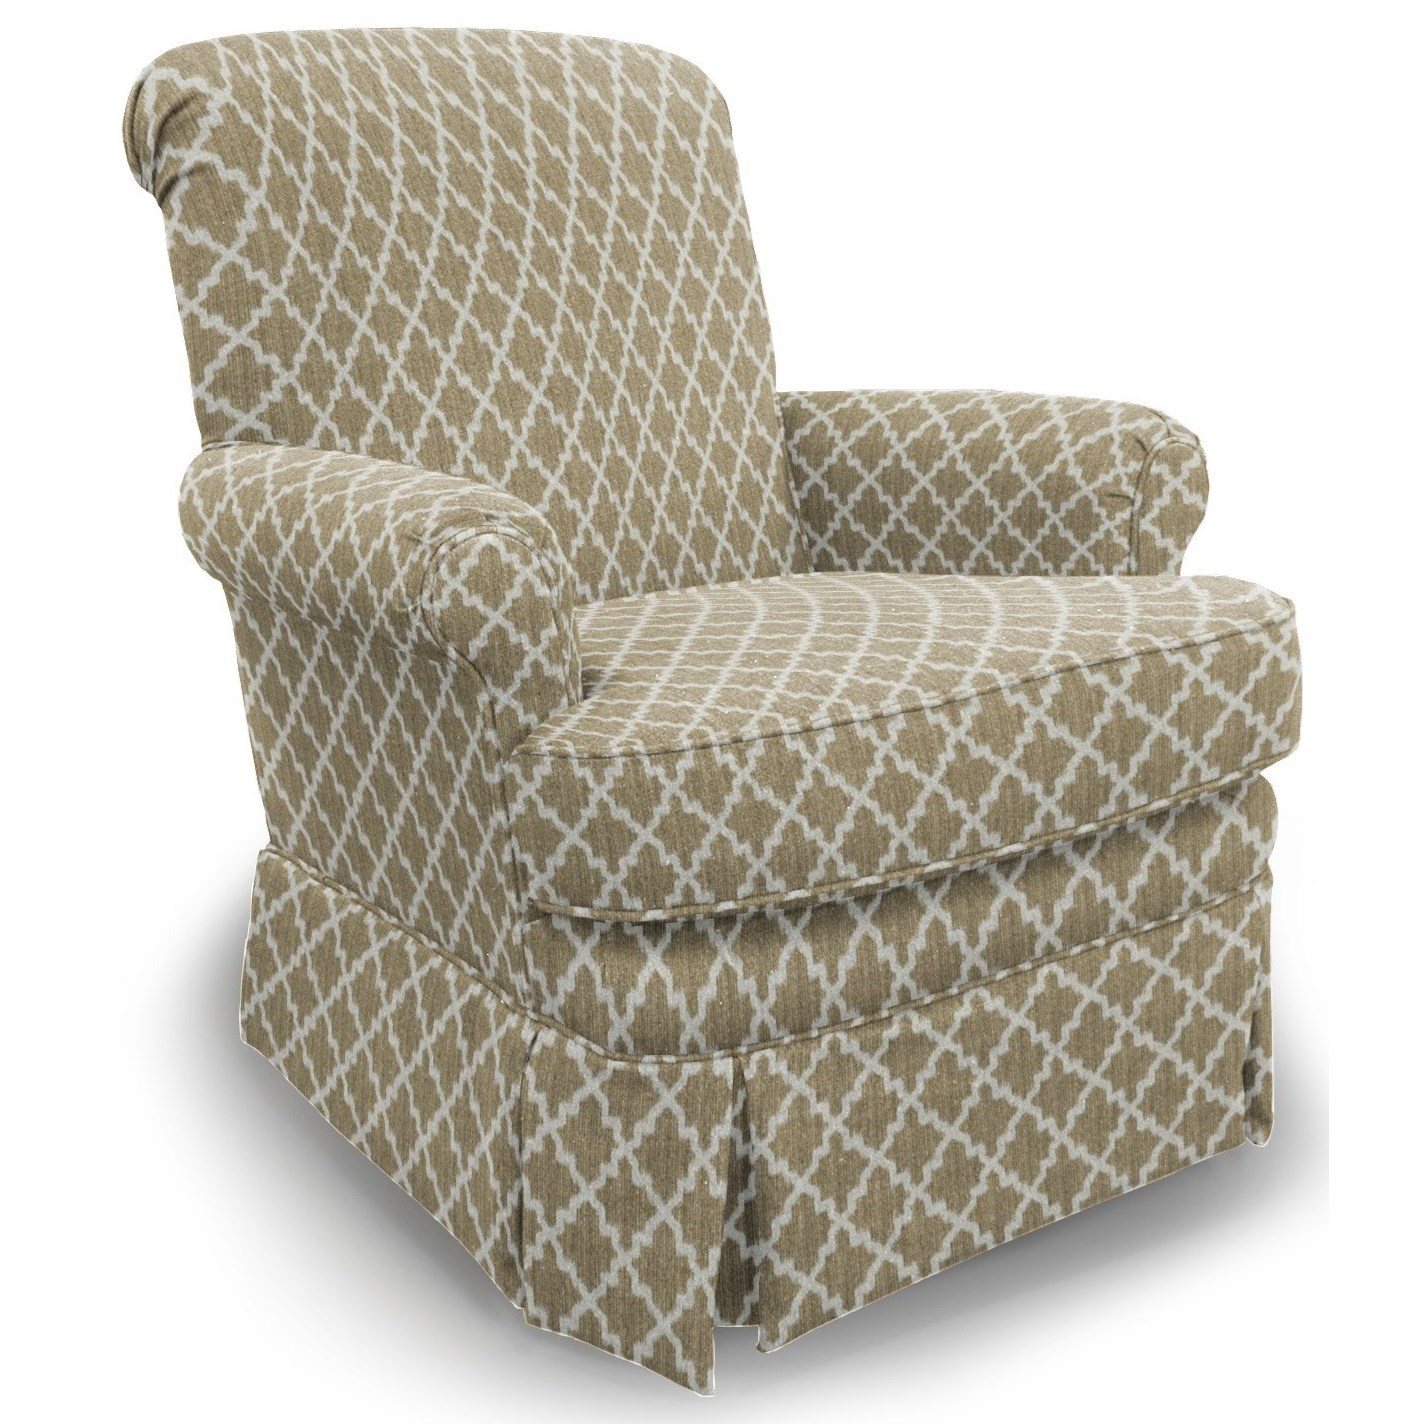 Best Home Furnishings Chairs - Swivel Glide Nava Glide Chair - Item Number: 1216-28843